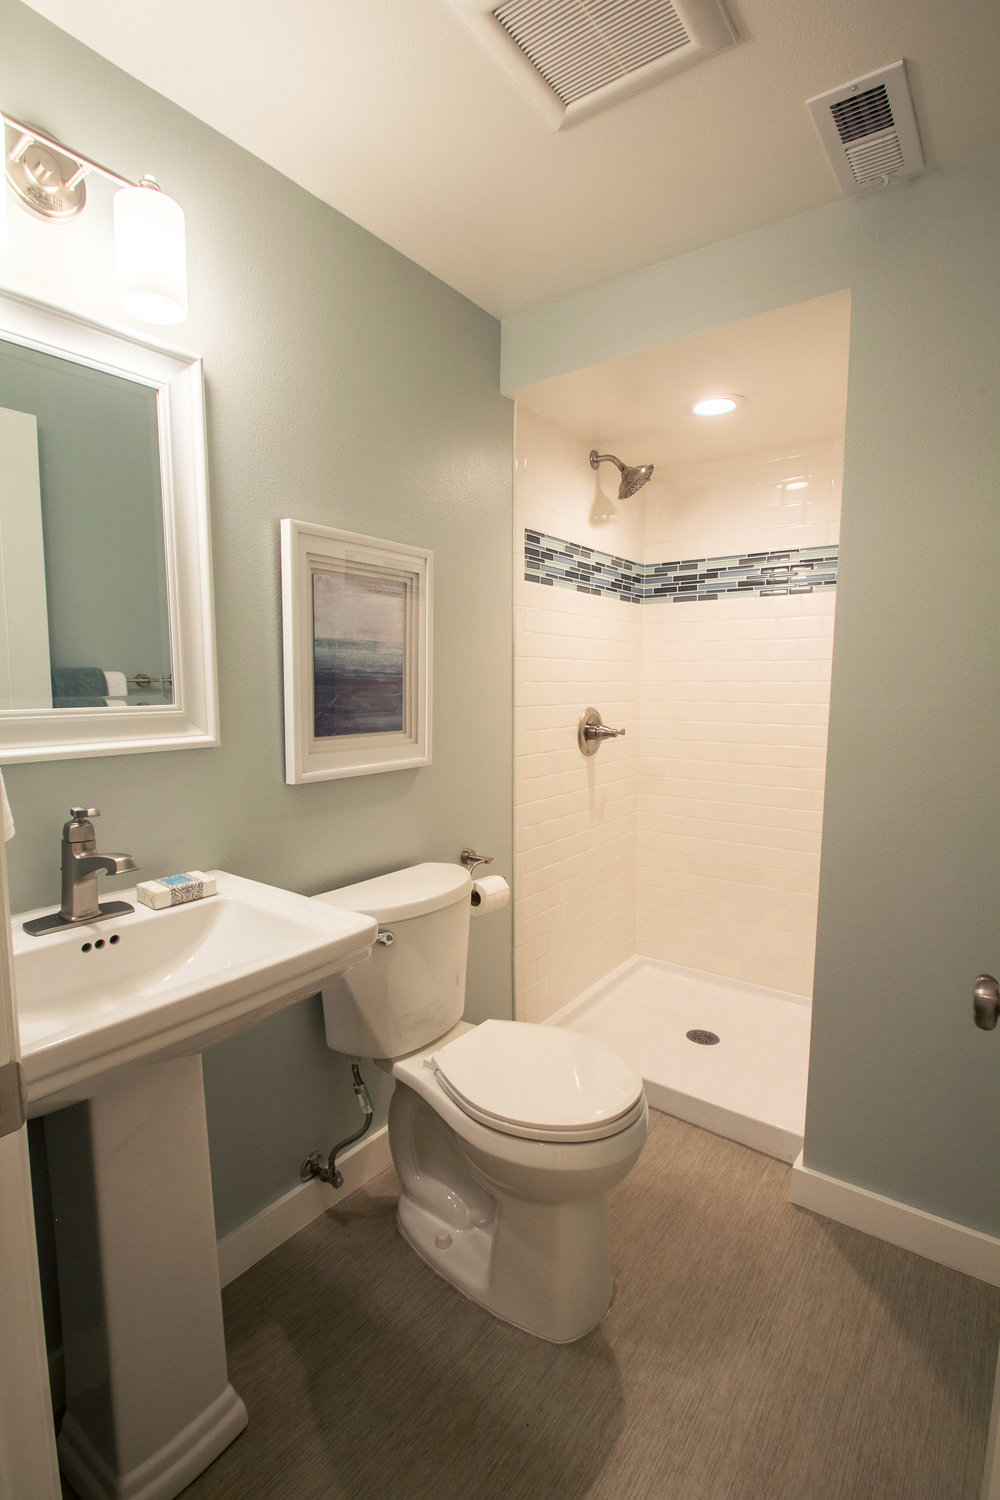 DOWNSTAIRS BATHROOM AFTER